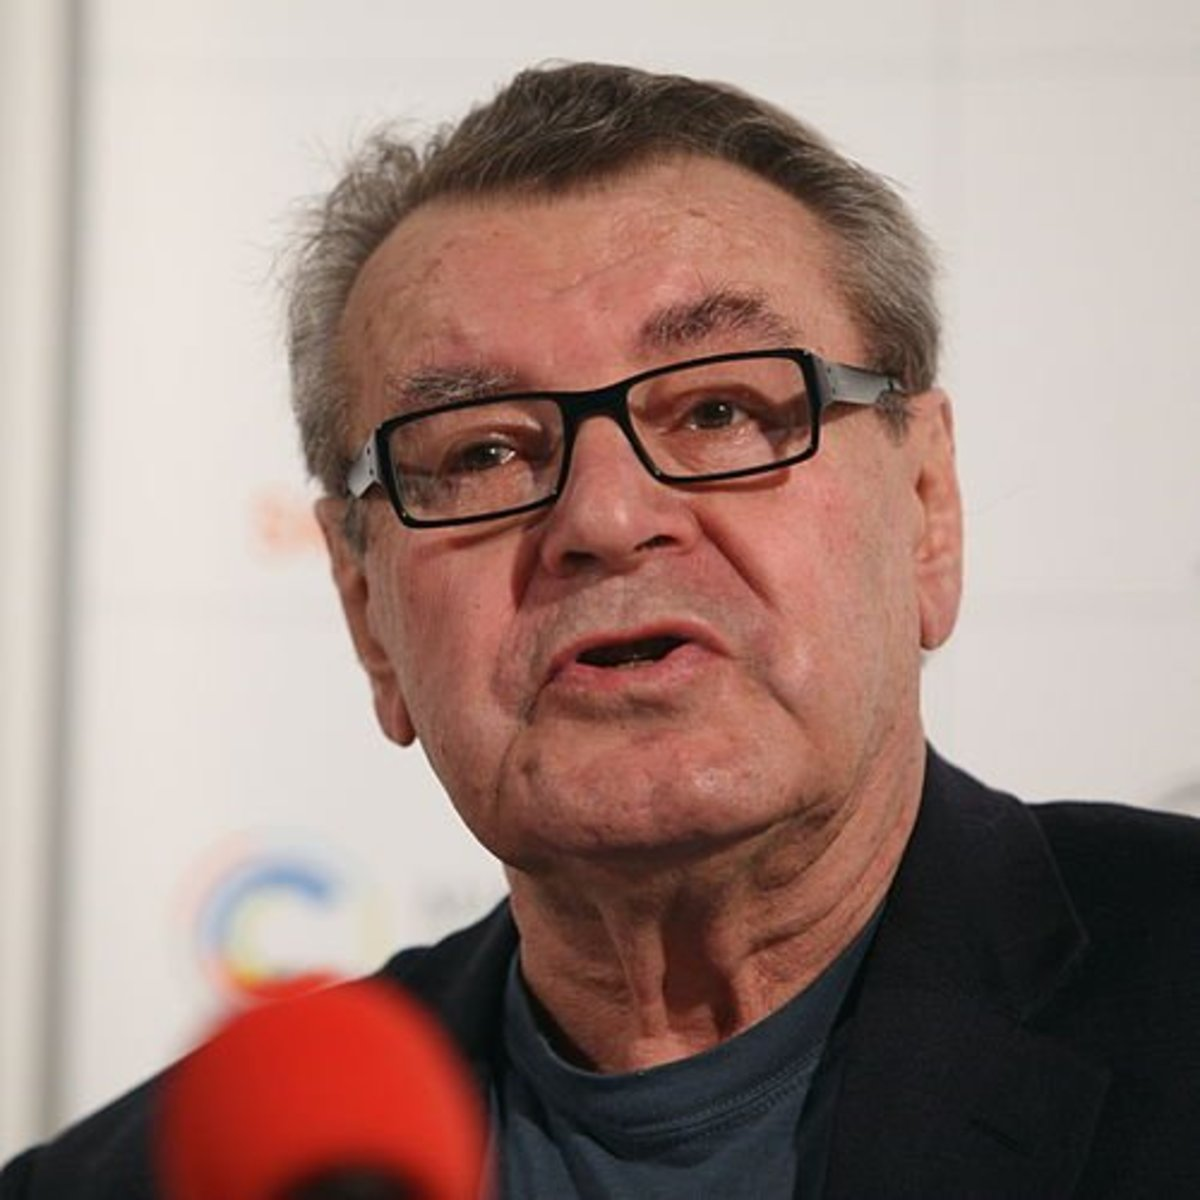 Milos Forman at the 44th Karlovy Vary International Film Festival 2009, Czech Republic.